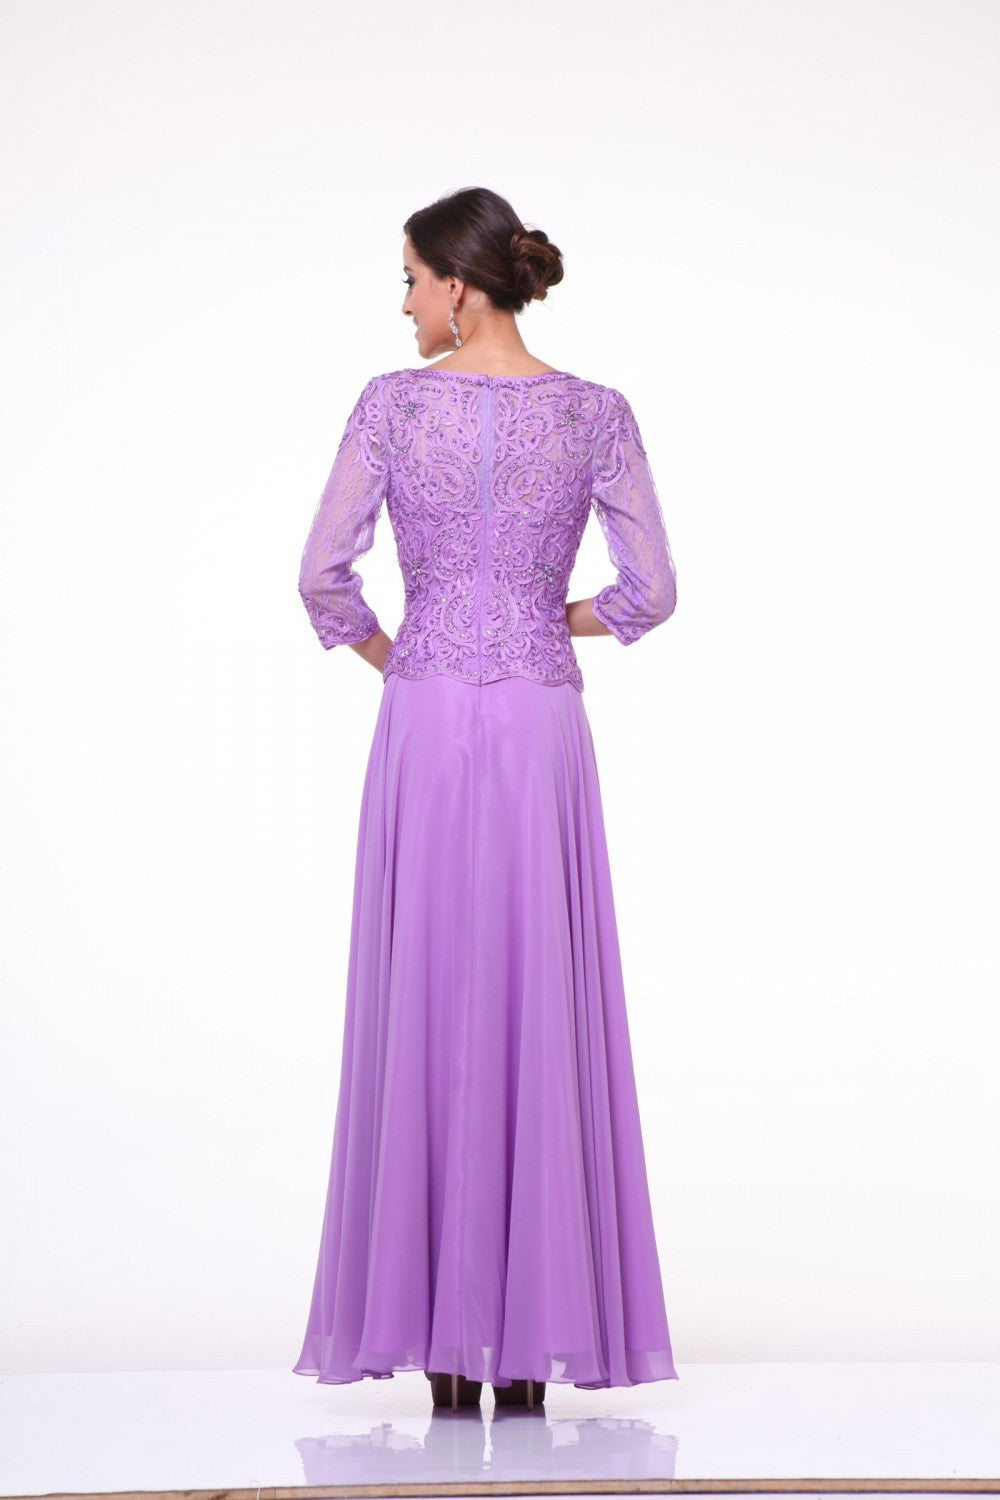 Beaded Lace Bodice Chiffon Empire Waist Dress